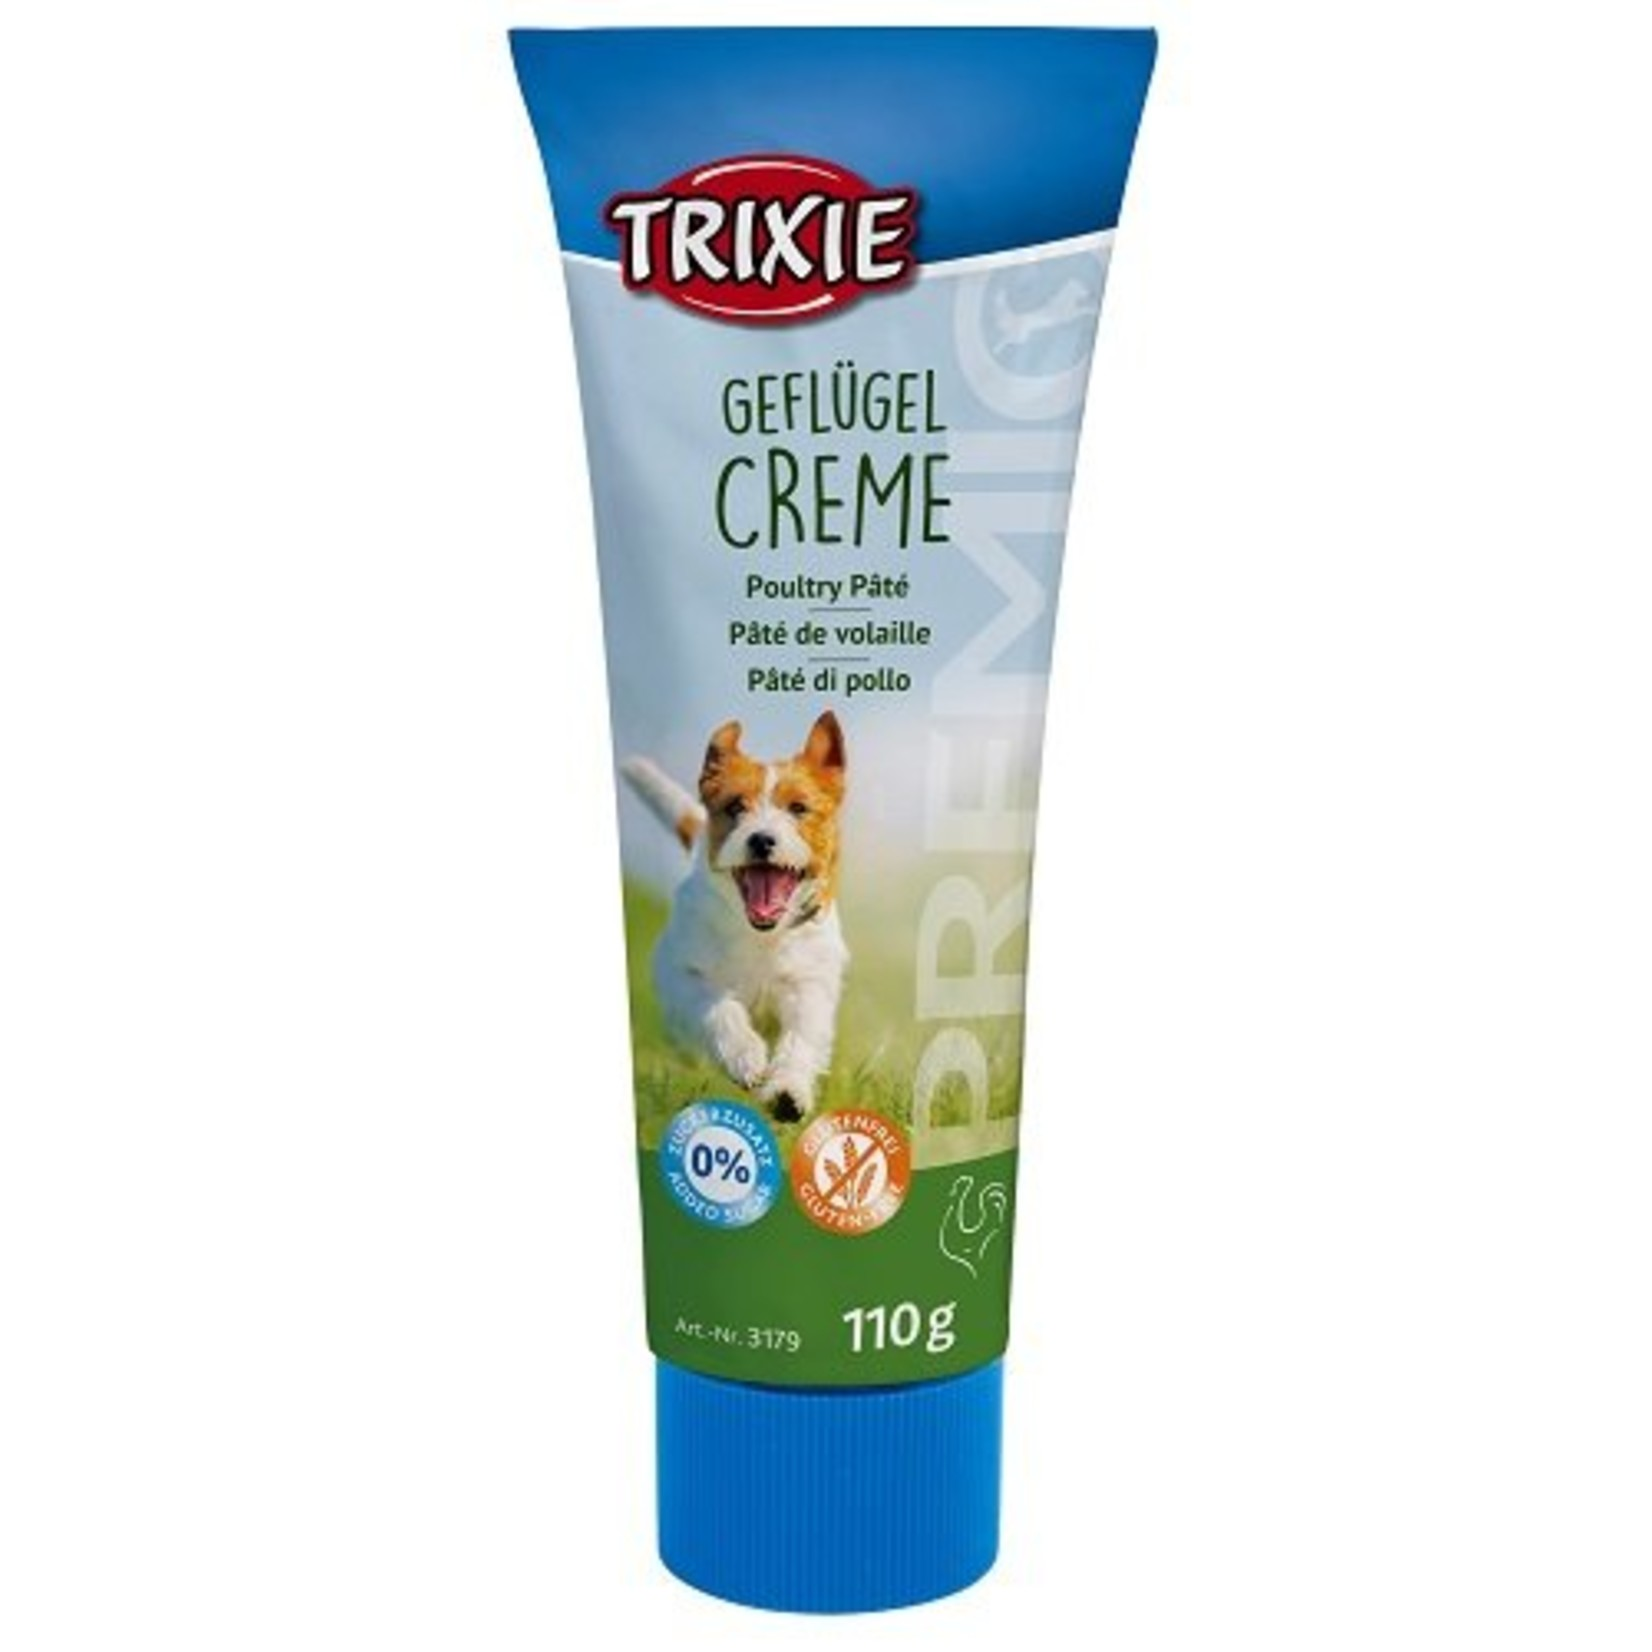 Bacon creme in tube